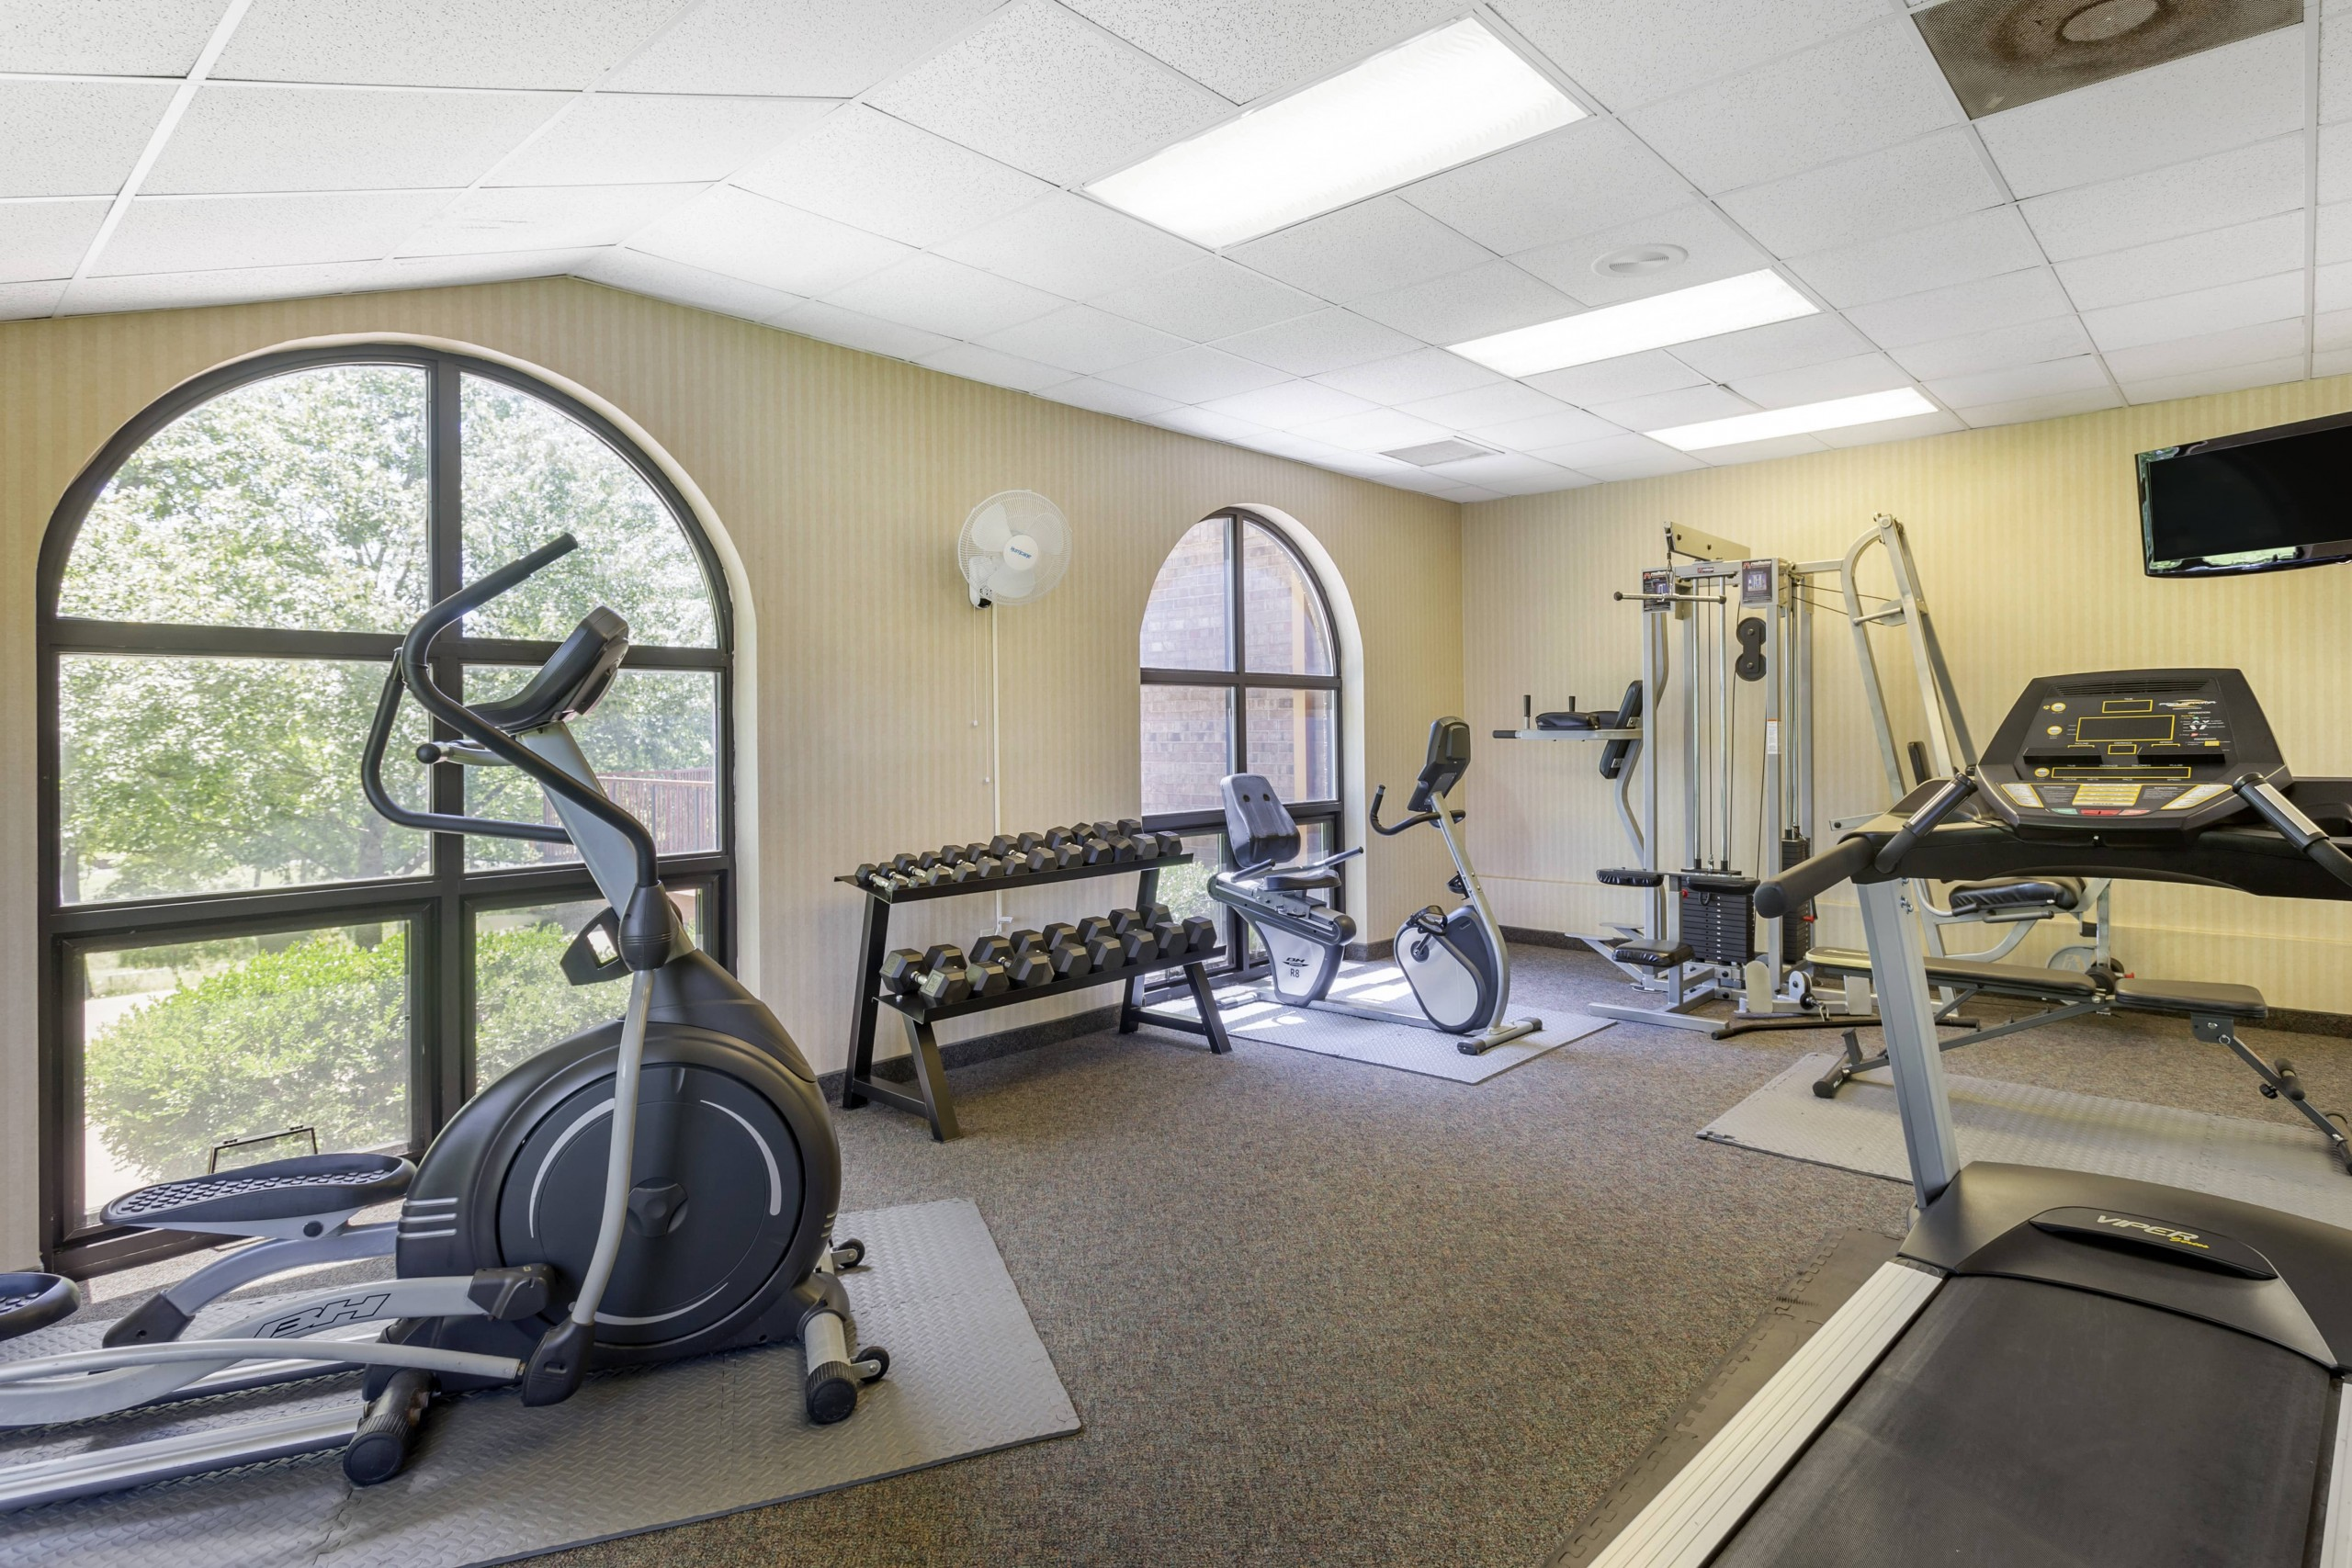 Comfort Inn Thousand Hills Fitness Room